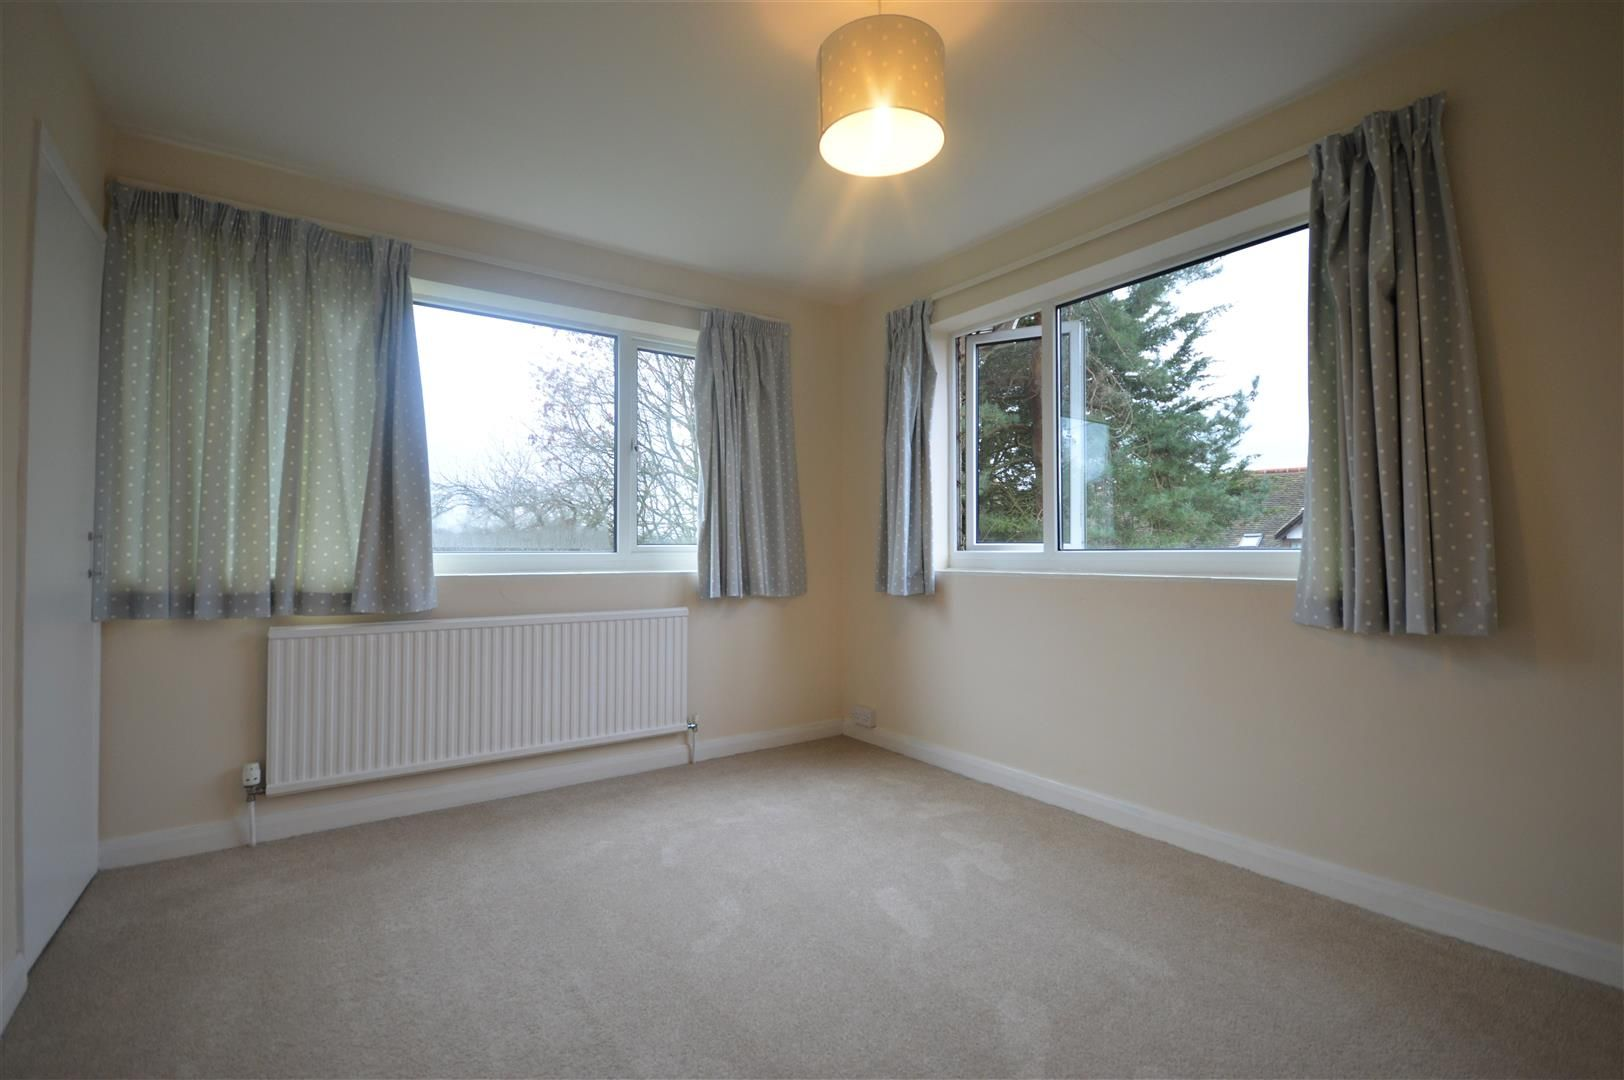 4 bed detached to rent in Kingsland 12